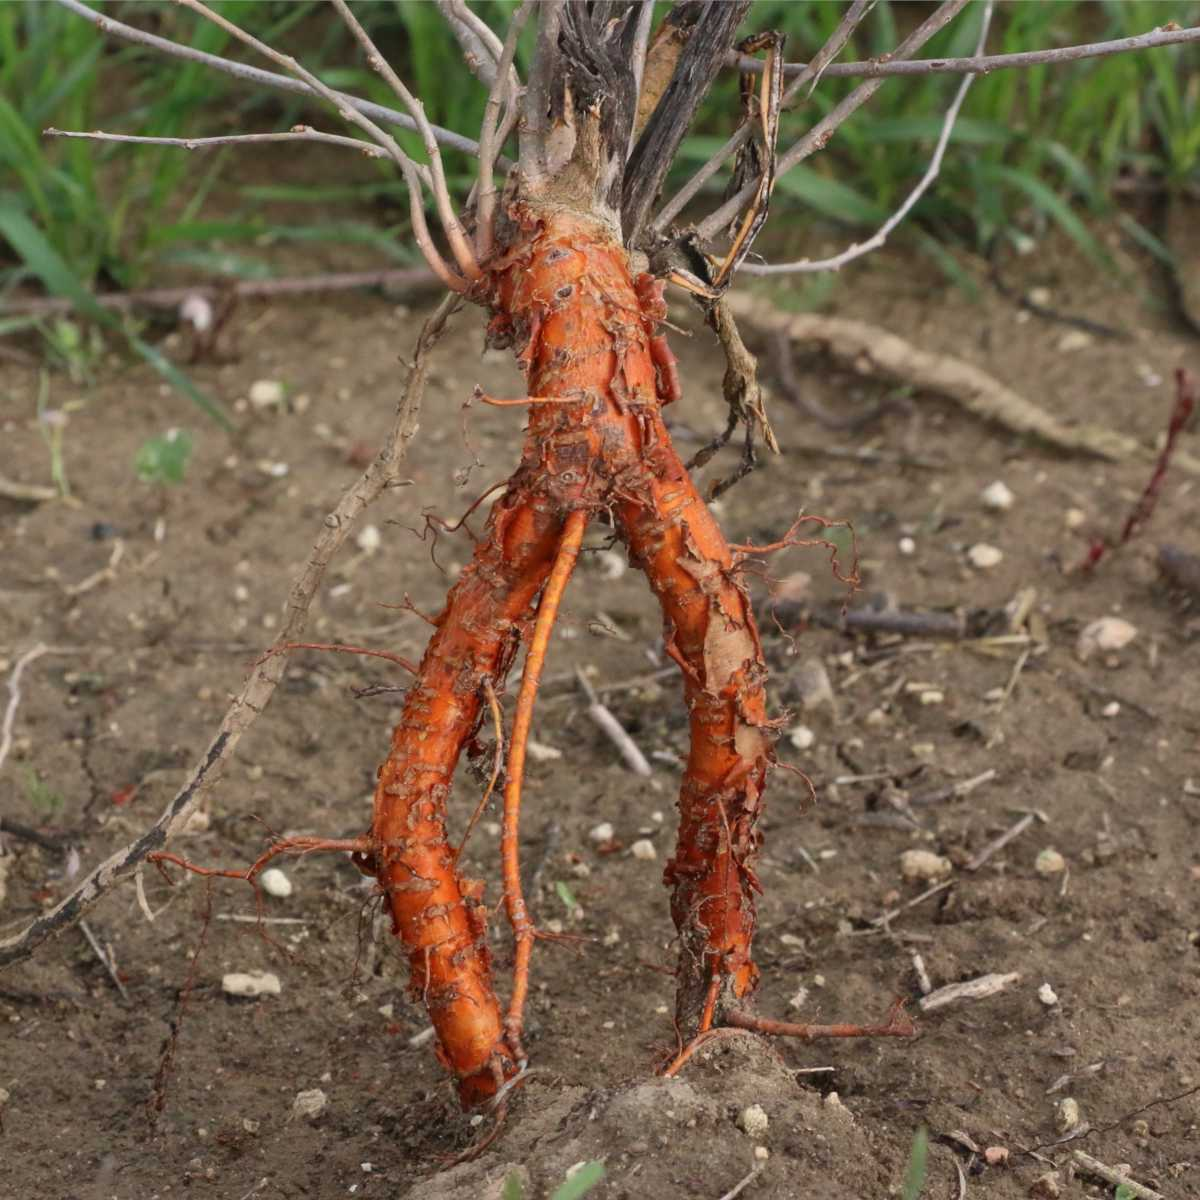 Roots exposed on a plant during transplanting